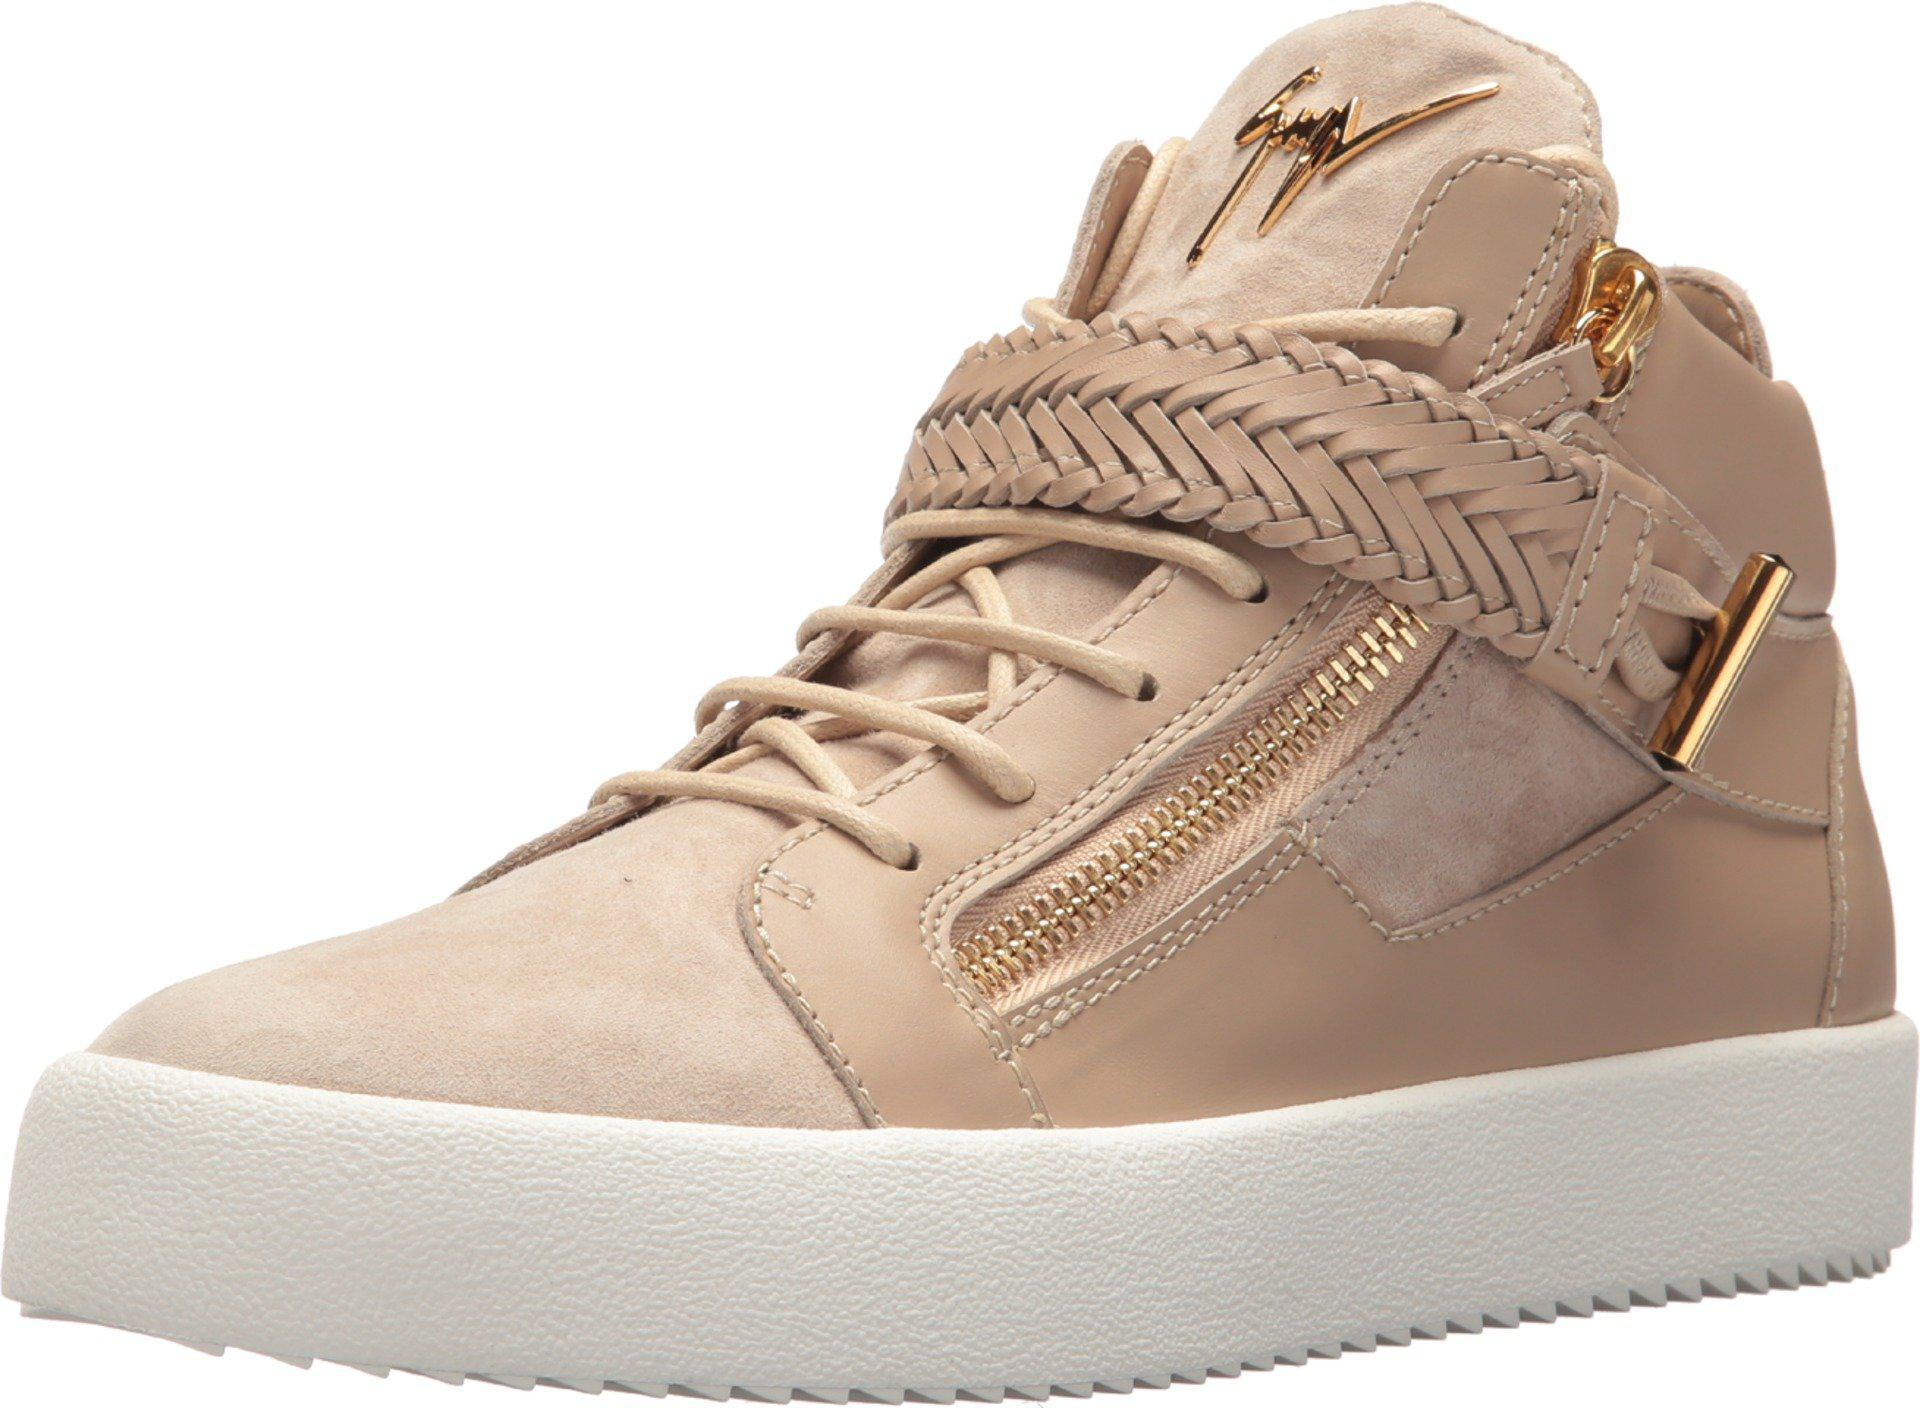 Giuseppe ZanottiMay London Braided Mid Top Sneaker DsqhYg7u